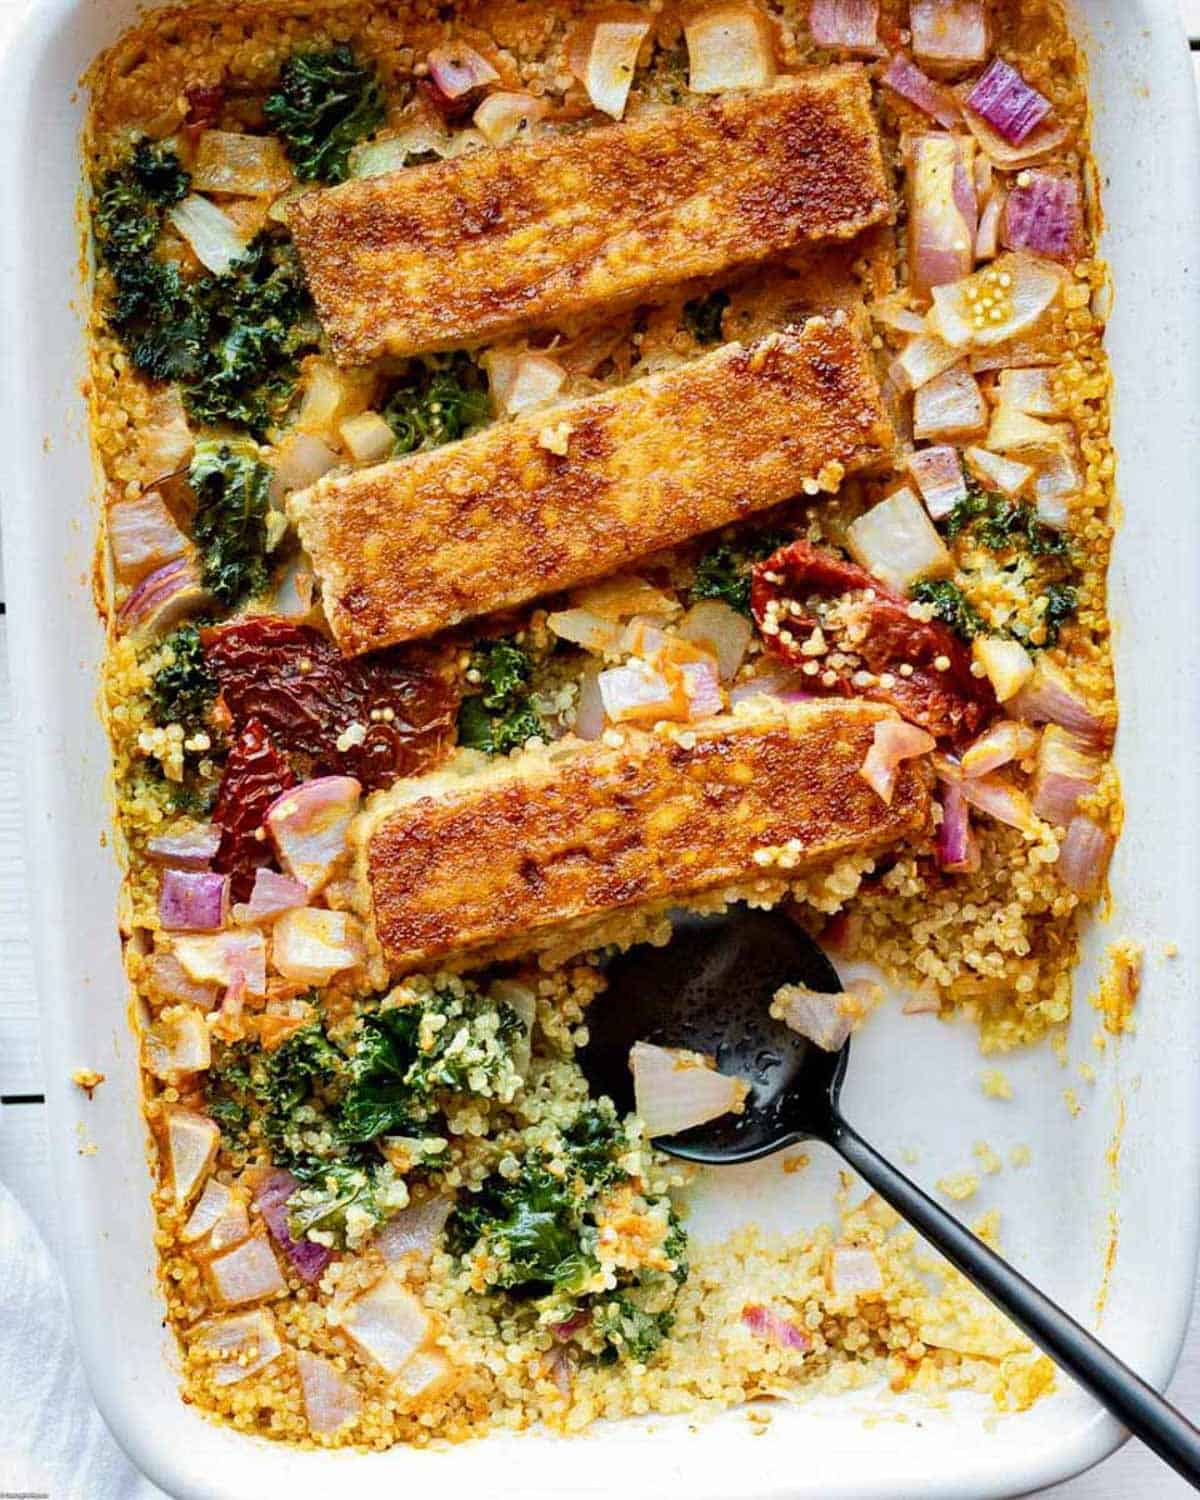 Tofu and quinoa casserole with sun-dried tomatoes, red onions and curly kale.